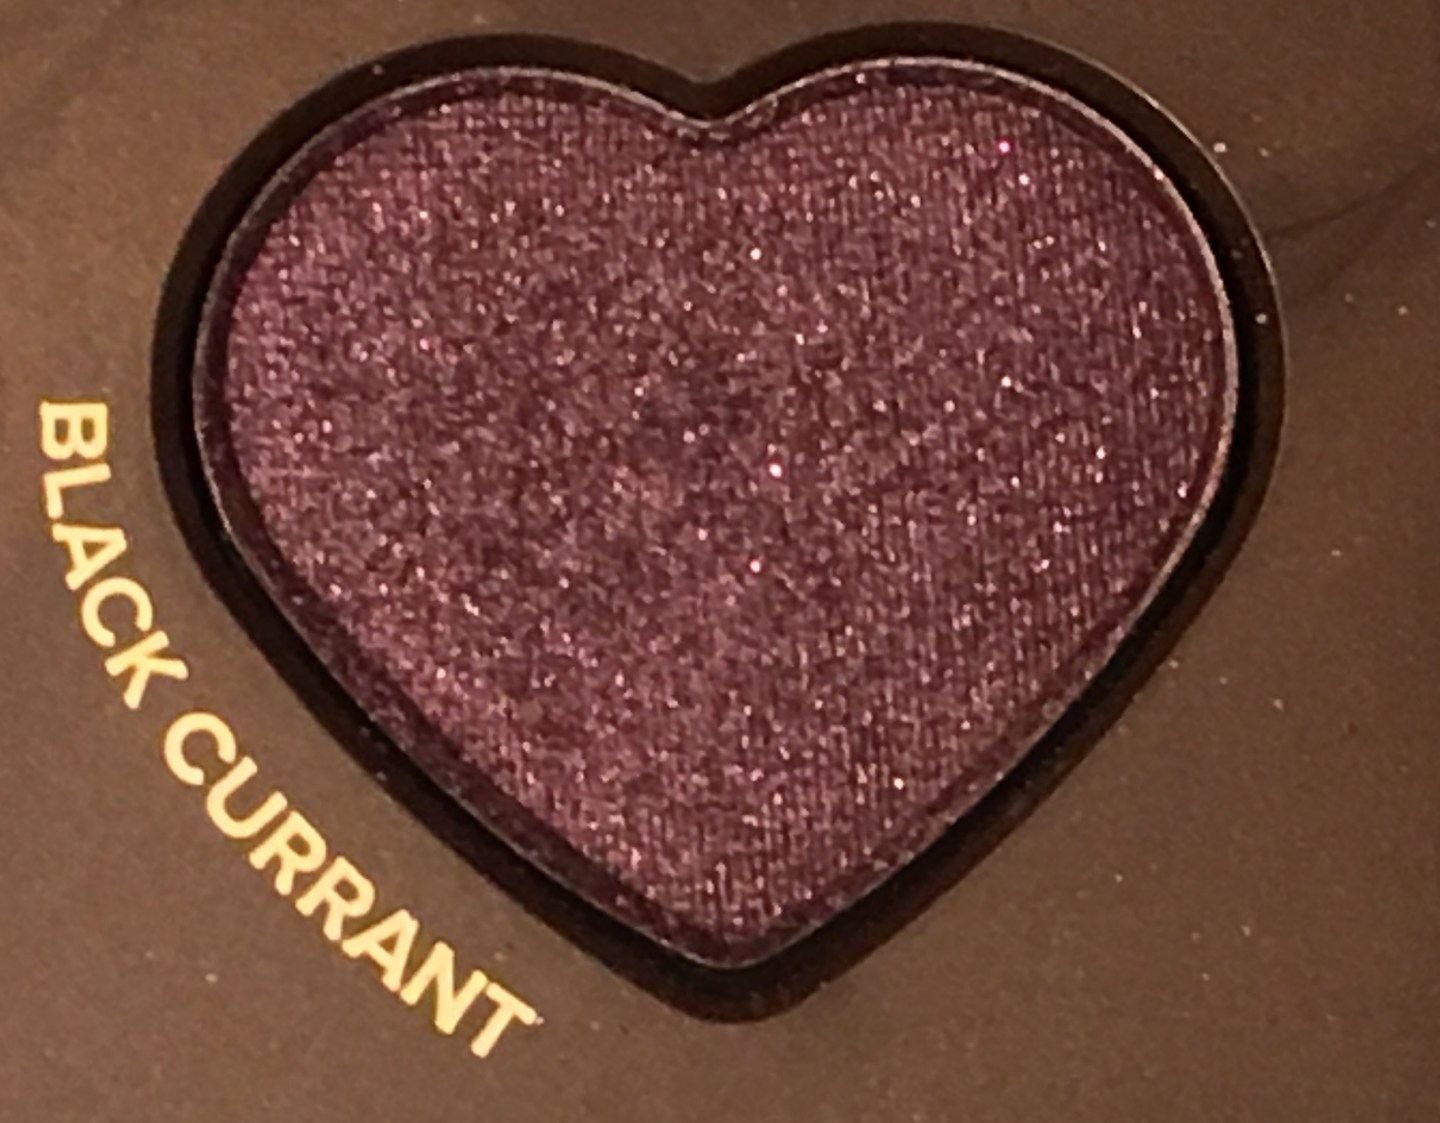 Black Currant (Deep Metallic Amethyst)